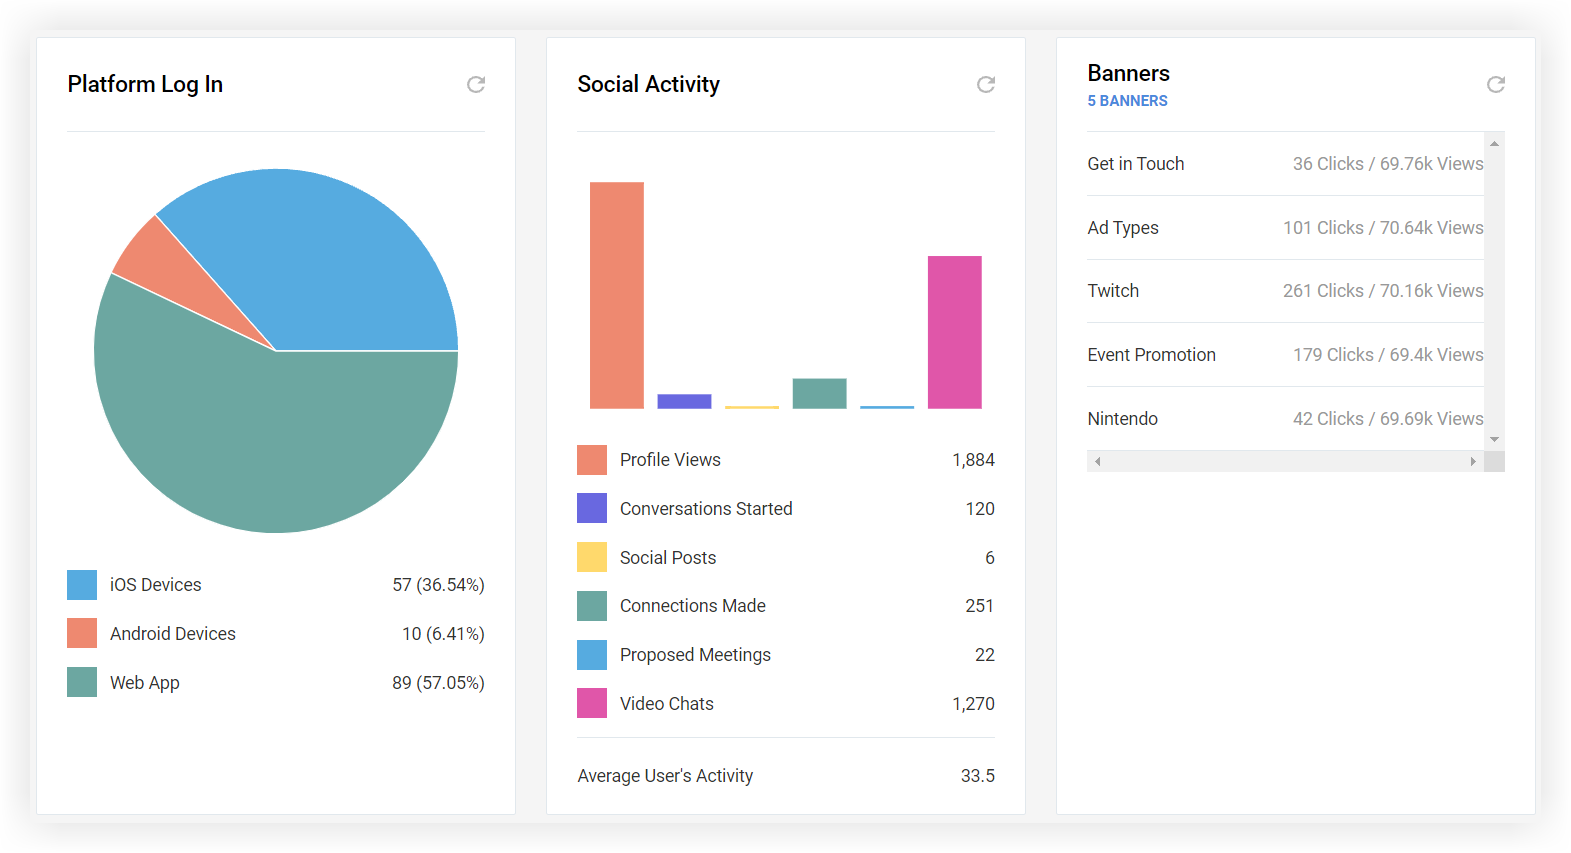 Screenshot of the Platform Log In, Social Activity, and Banners sections.